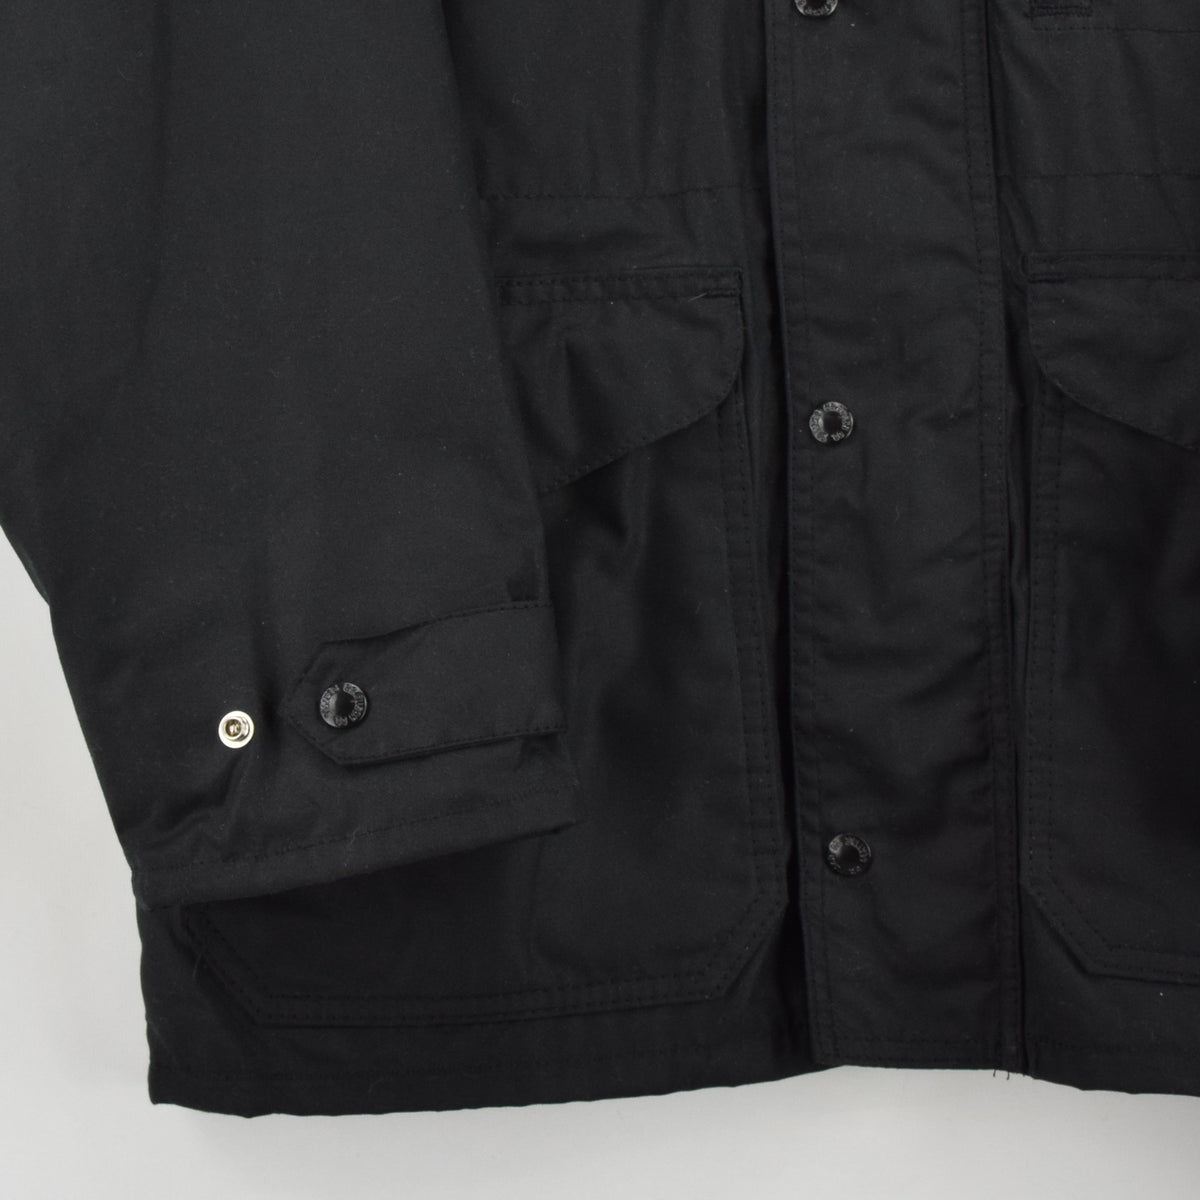 Filson Cover Cloth Mile Marker Coat Black Wax Cotton Jacket Made in USA M front hem